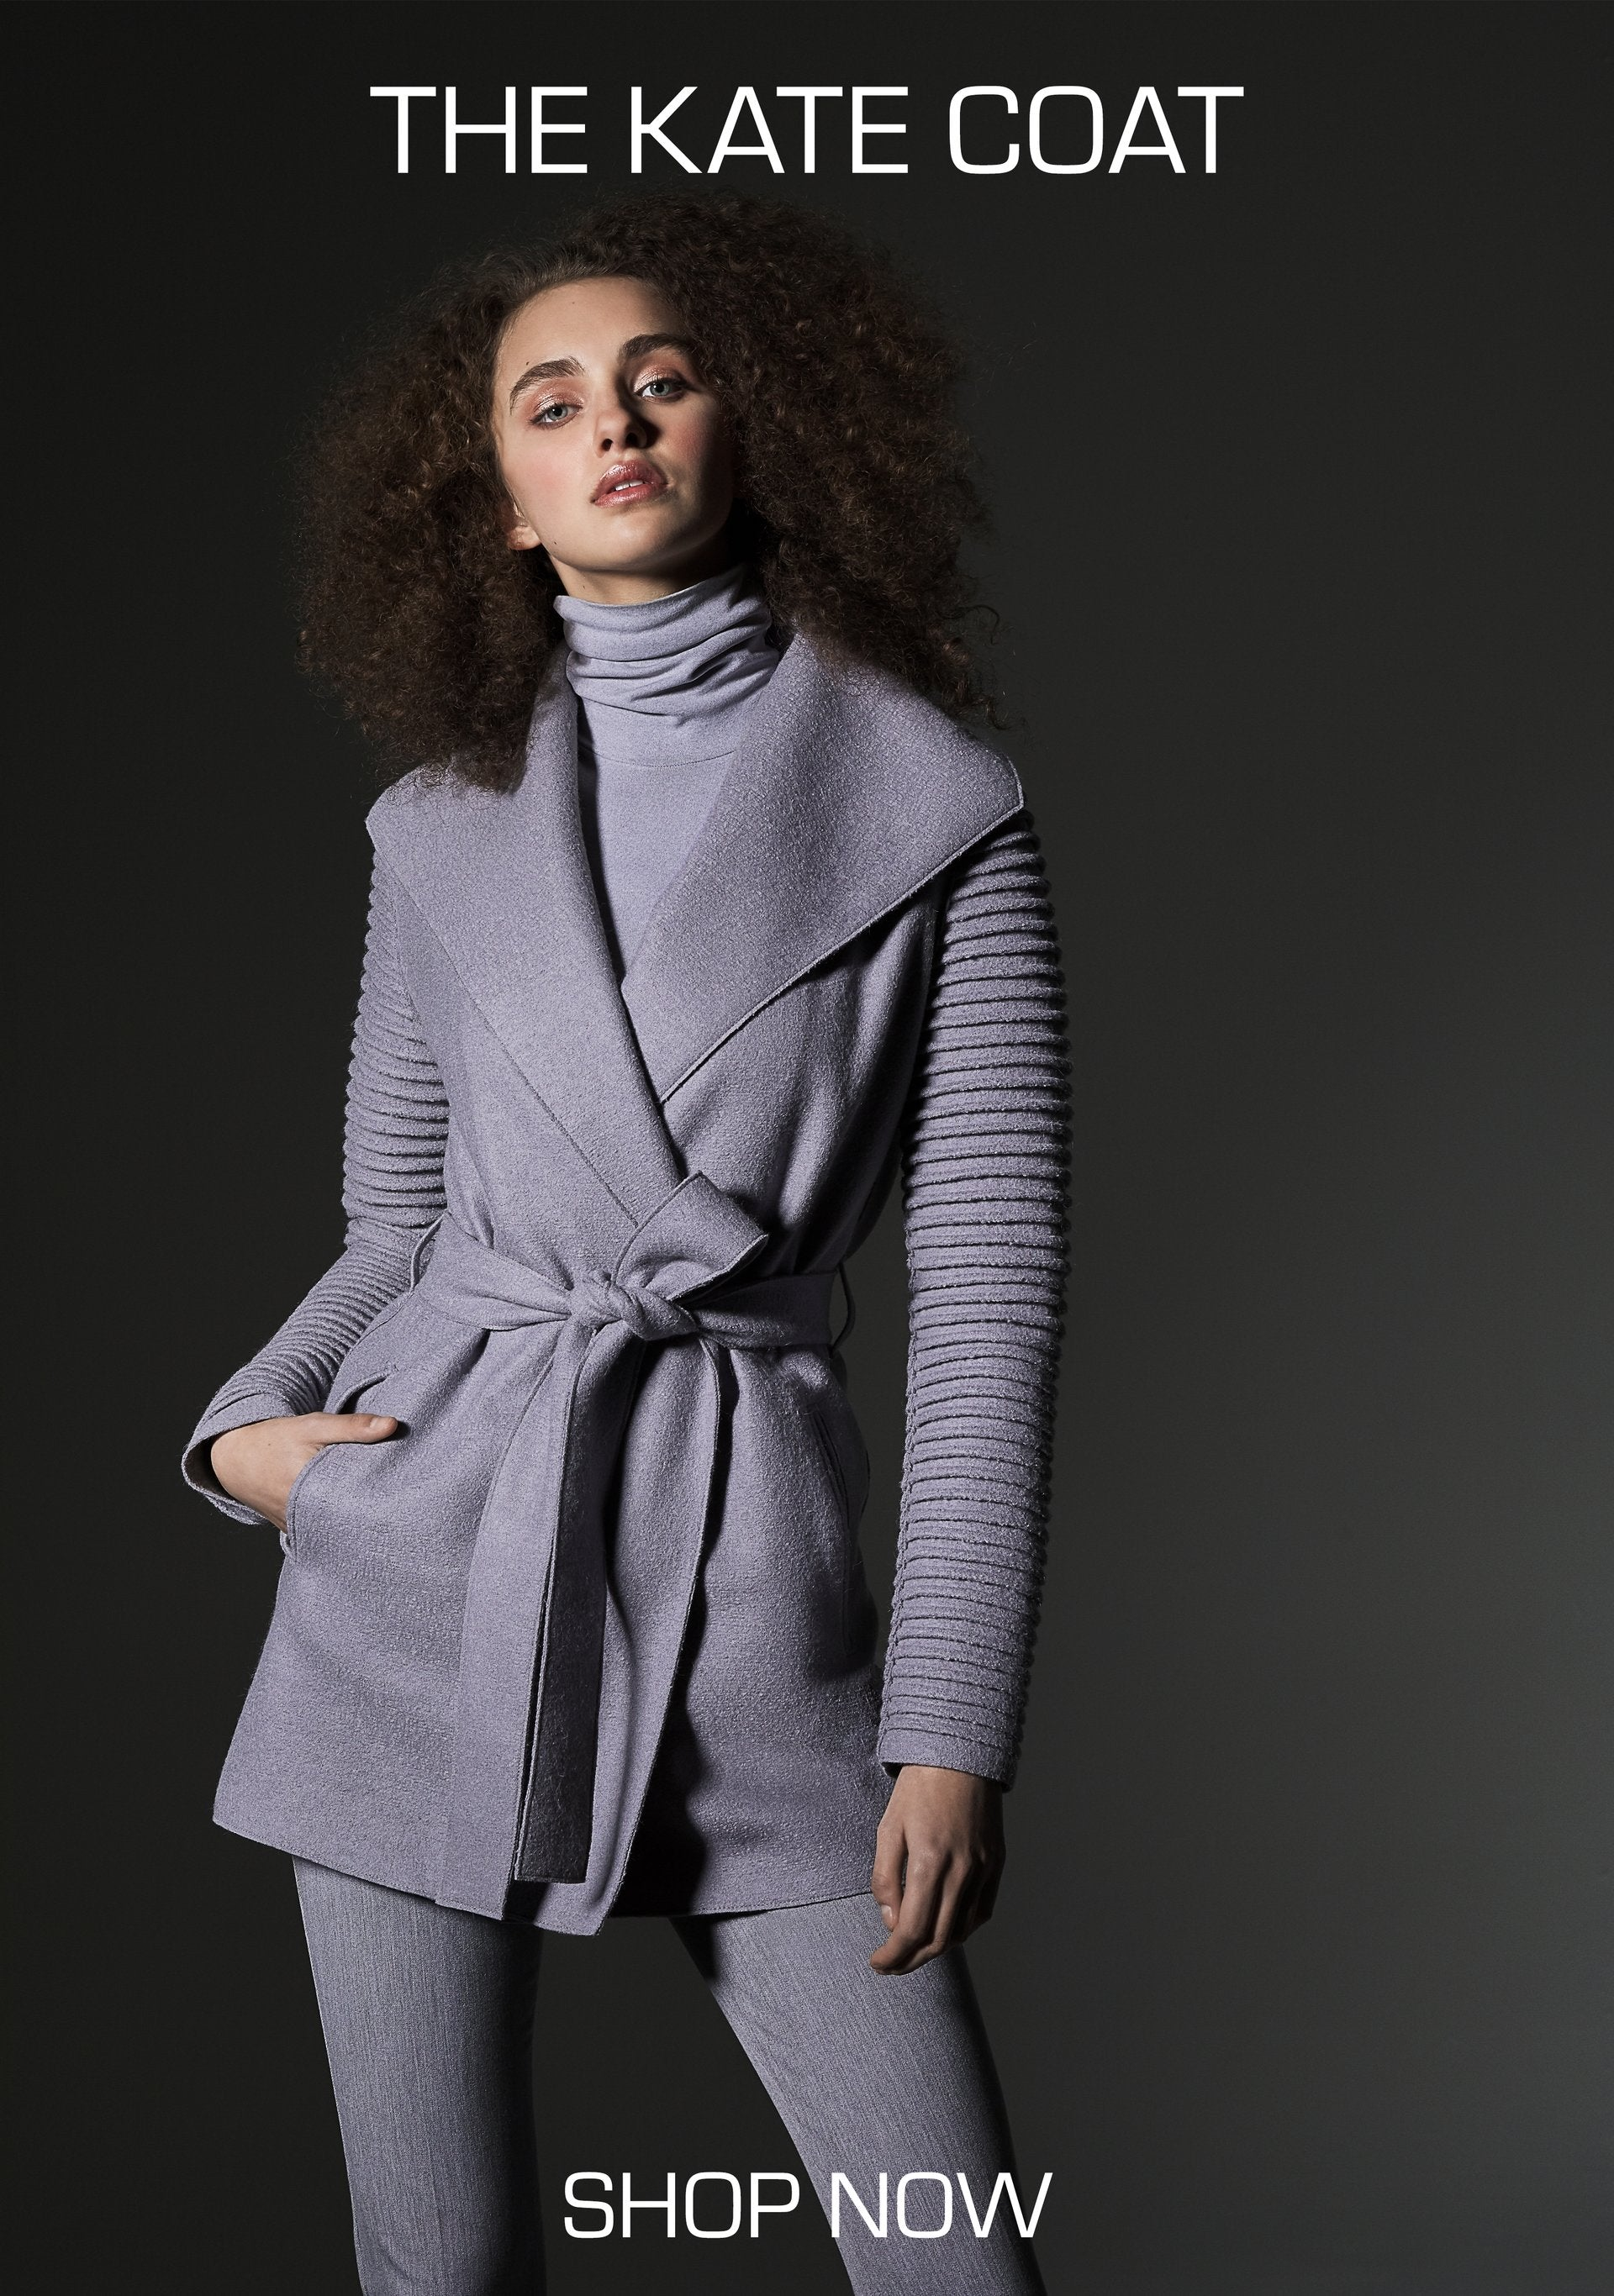 GULL GREY SIGNATURE WRAP COAT WITH RIBBED SLEEVES WORN BY THE DUCHESS OF CAMBRIDGE KATE MIDDLETON